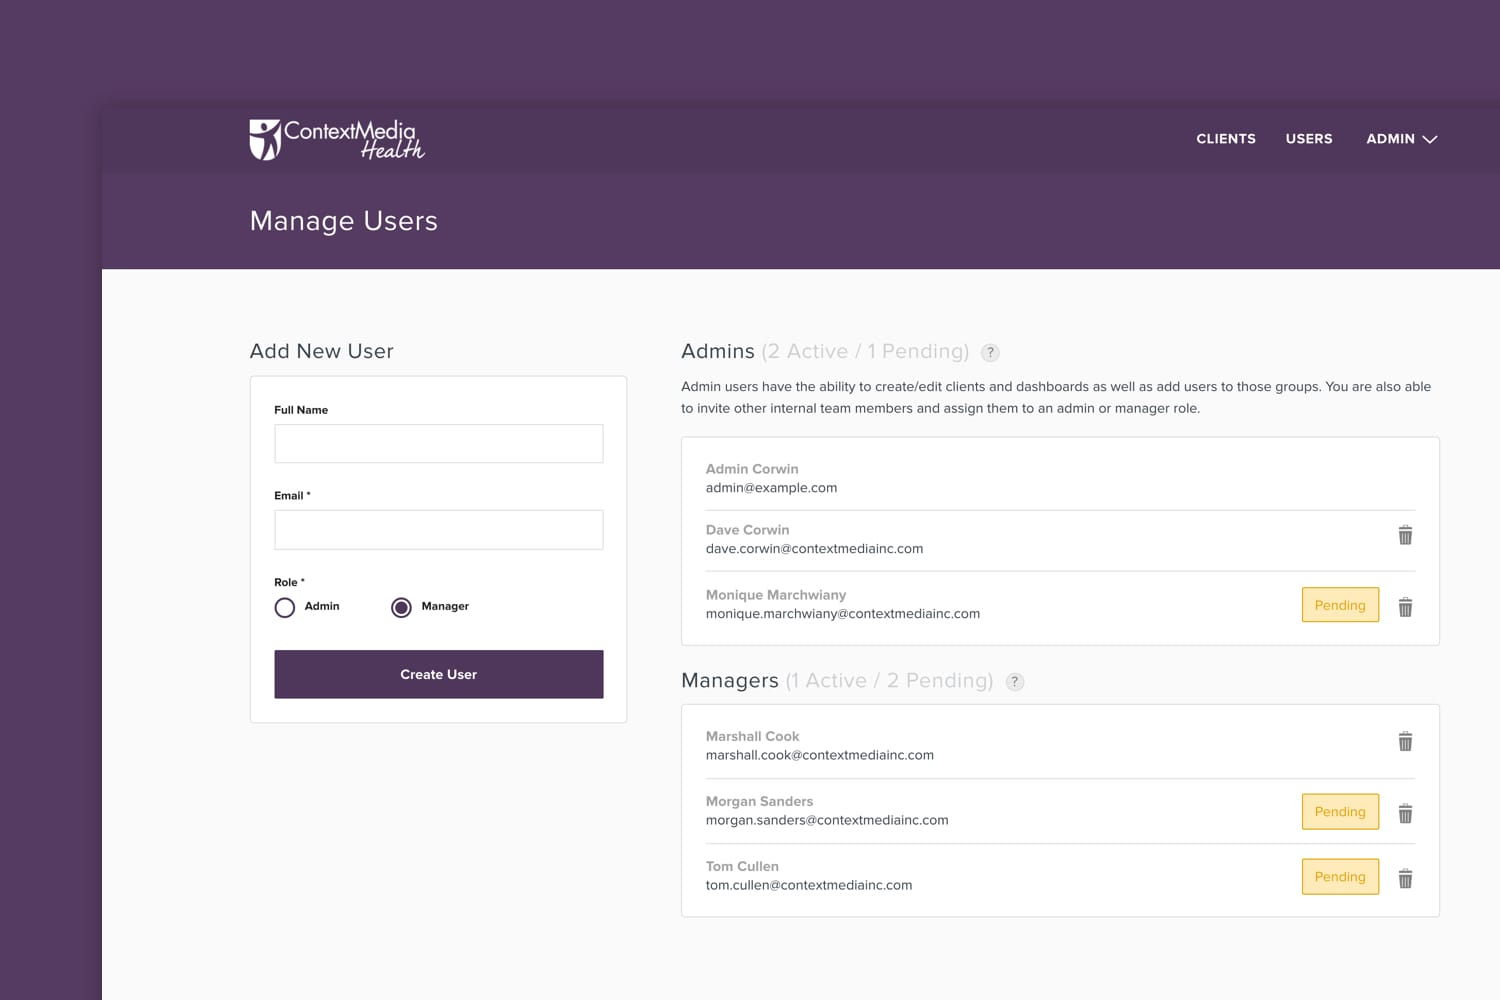 Context Media Manage Users page